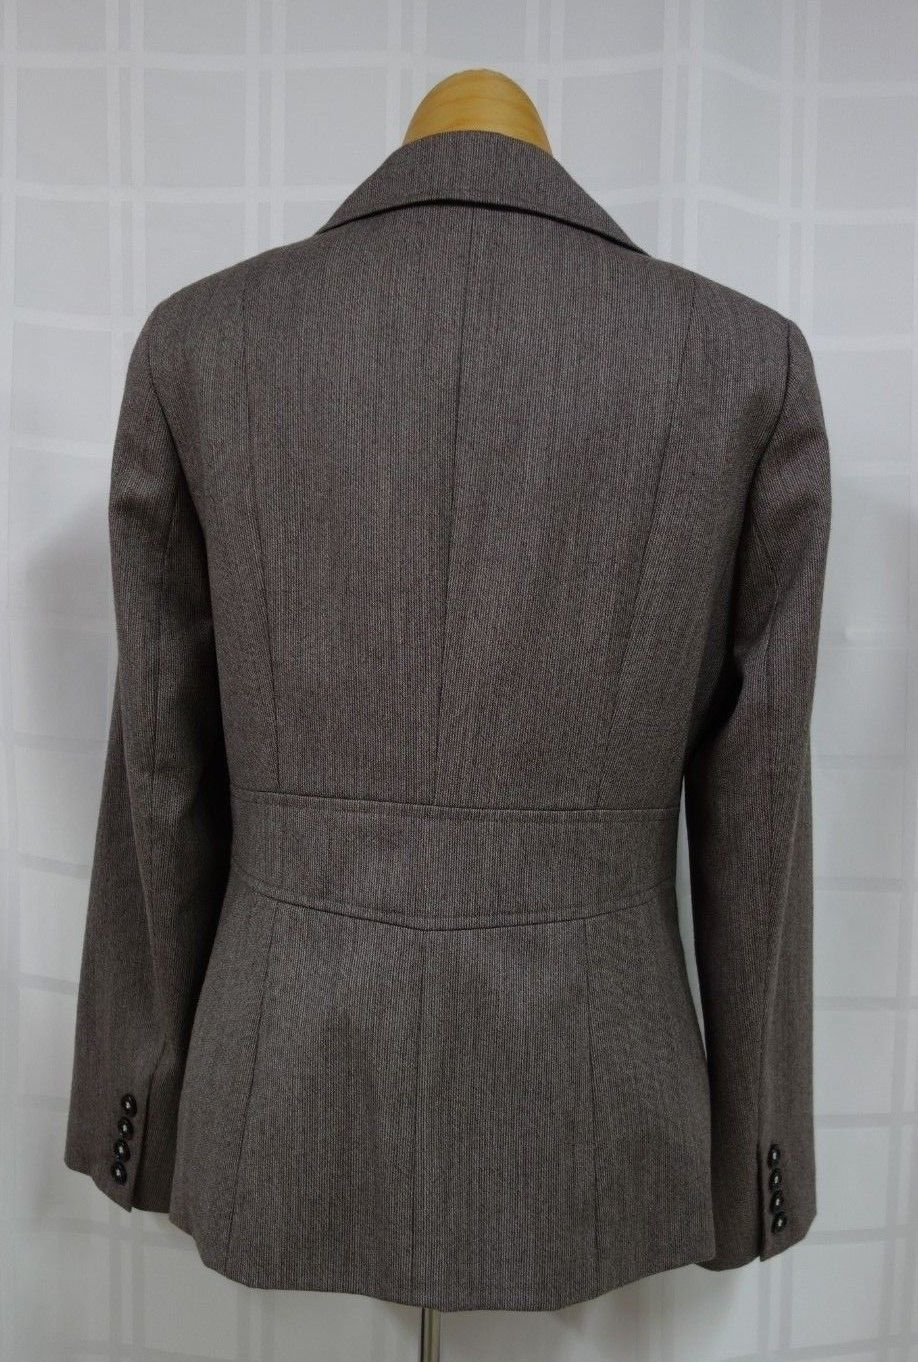 Talbots Womens Business Blazer Size 6 Brown Narrow Stripes 100% Wool Lined image 5